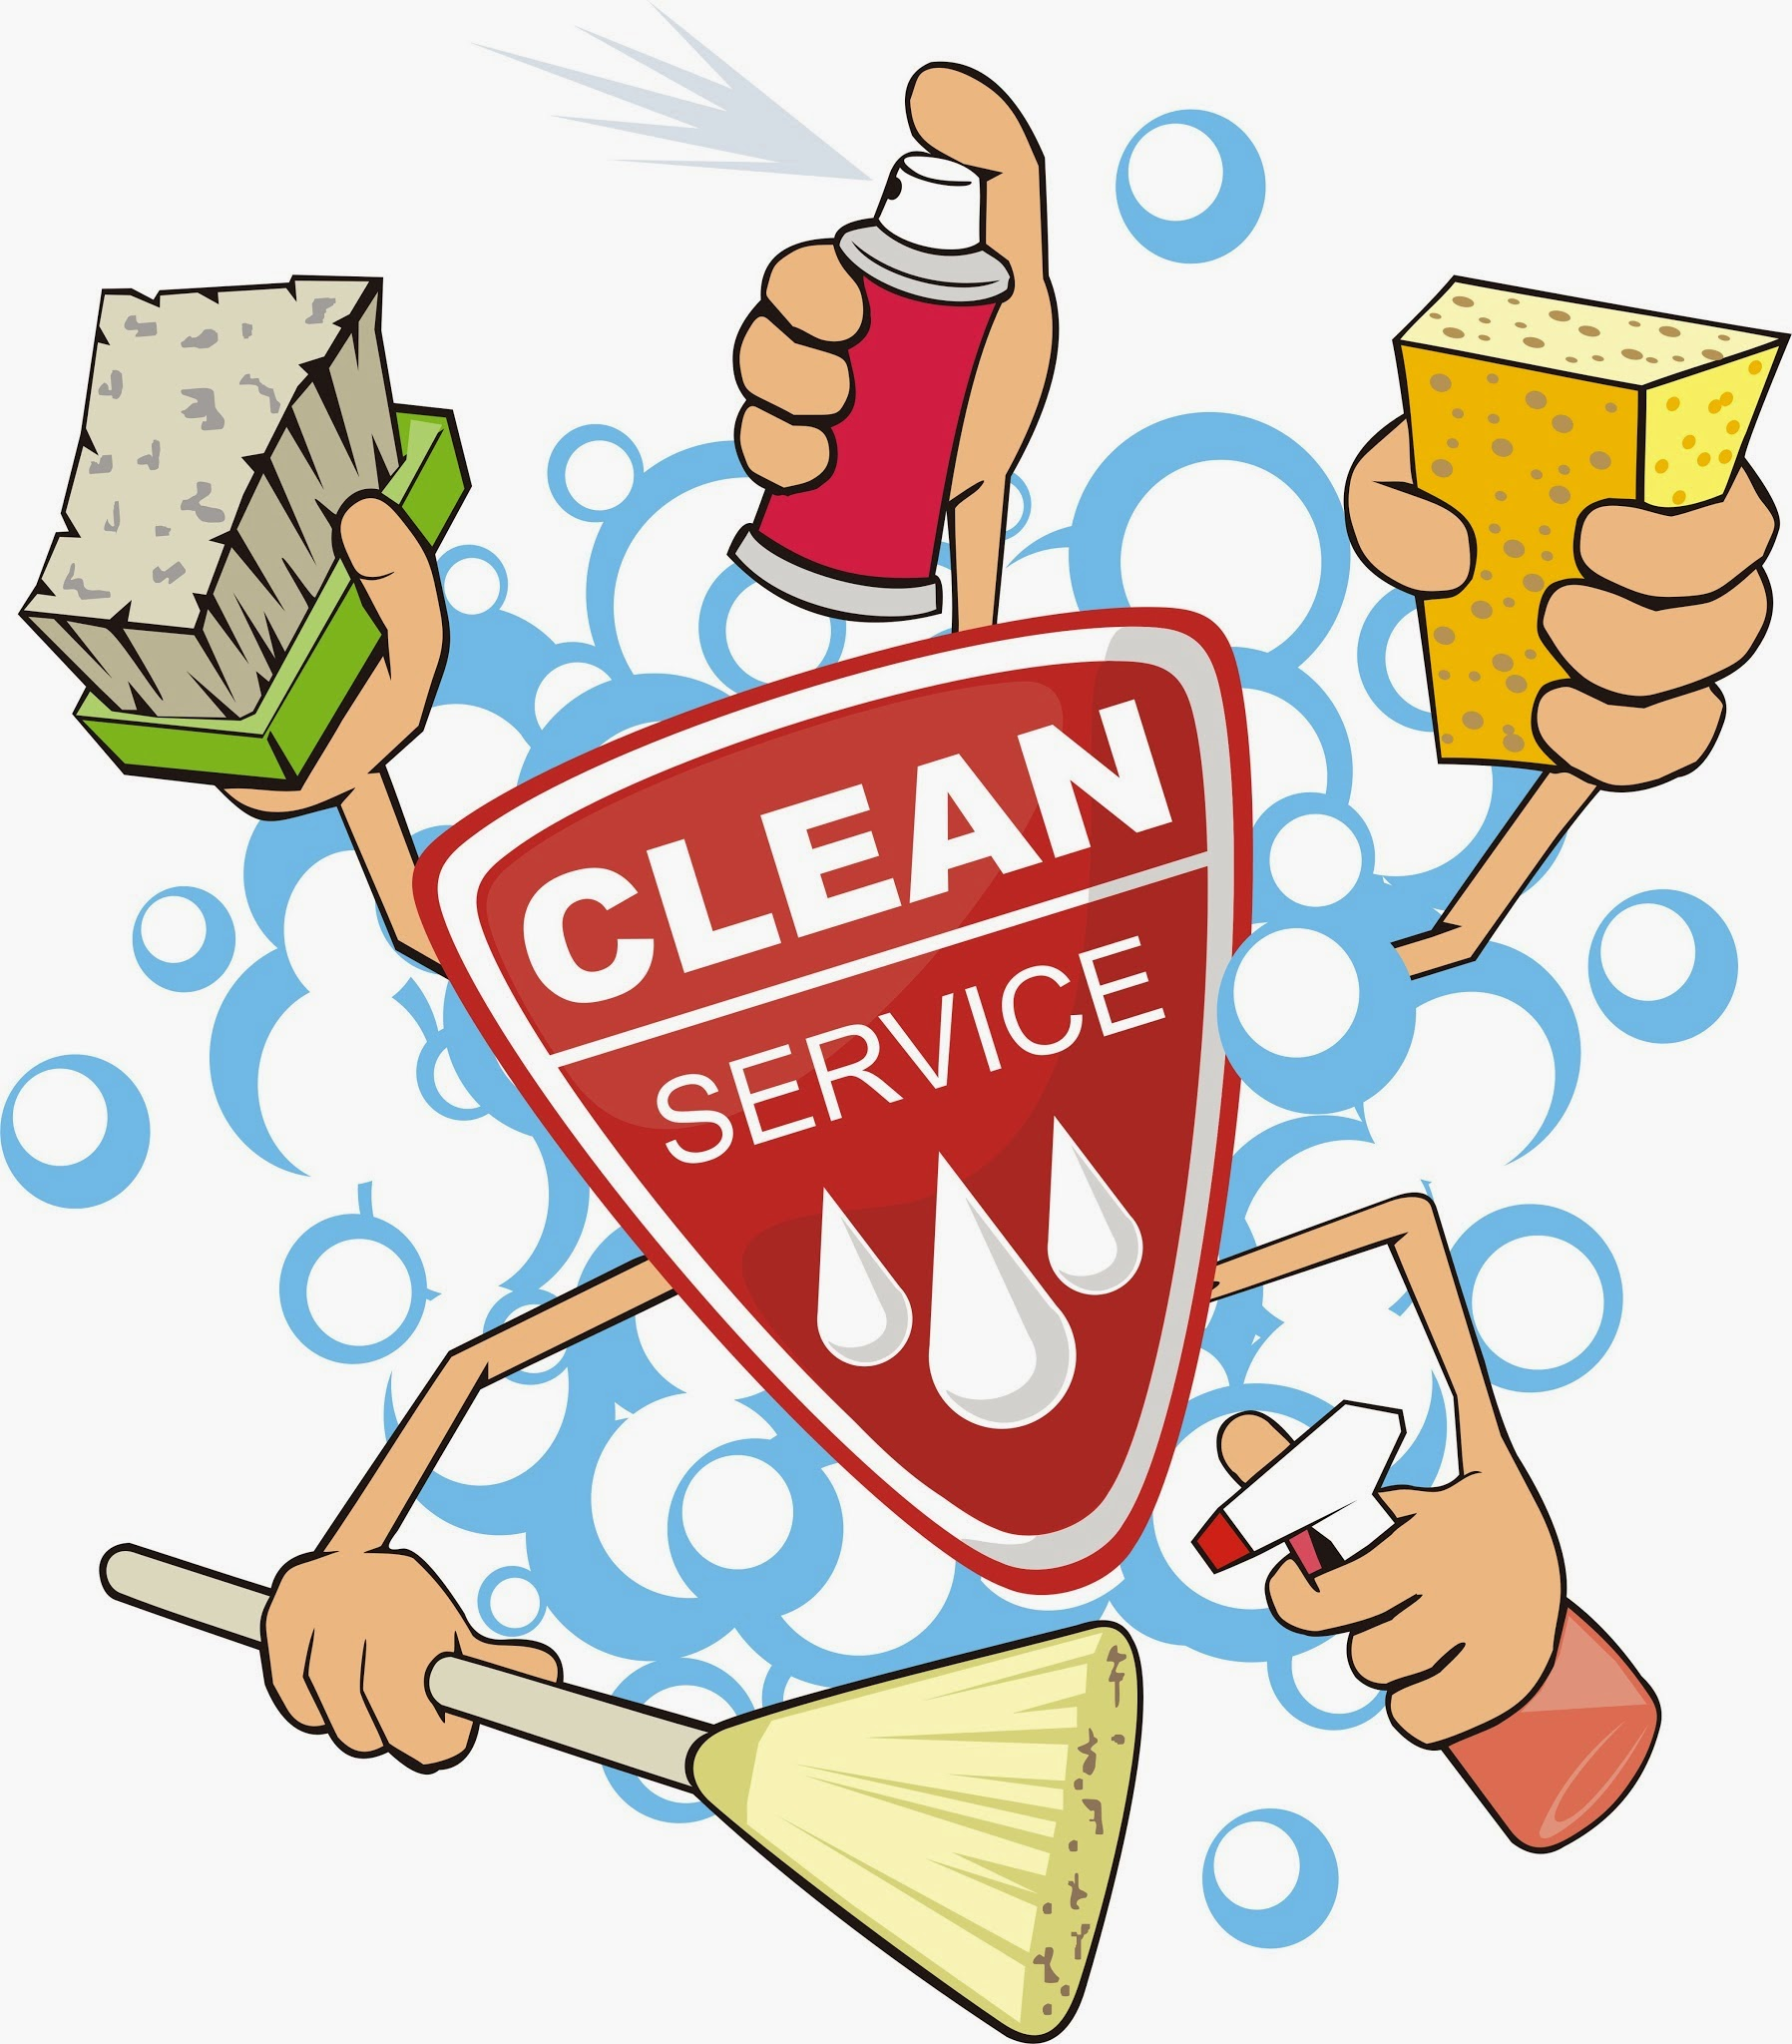 Free Cleaning Business Pictures, Download Free Clip Art.